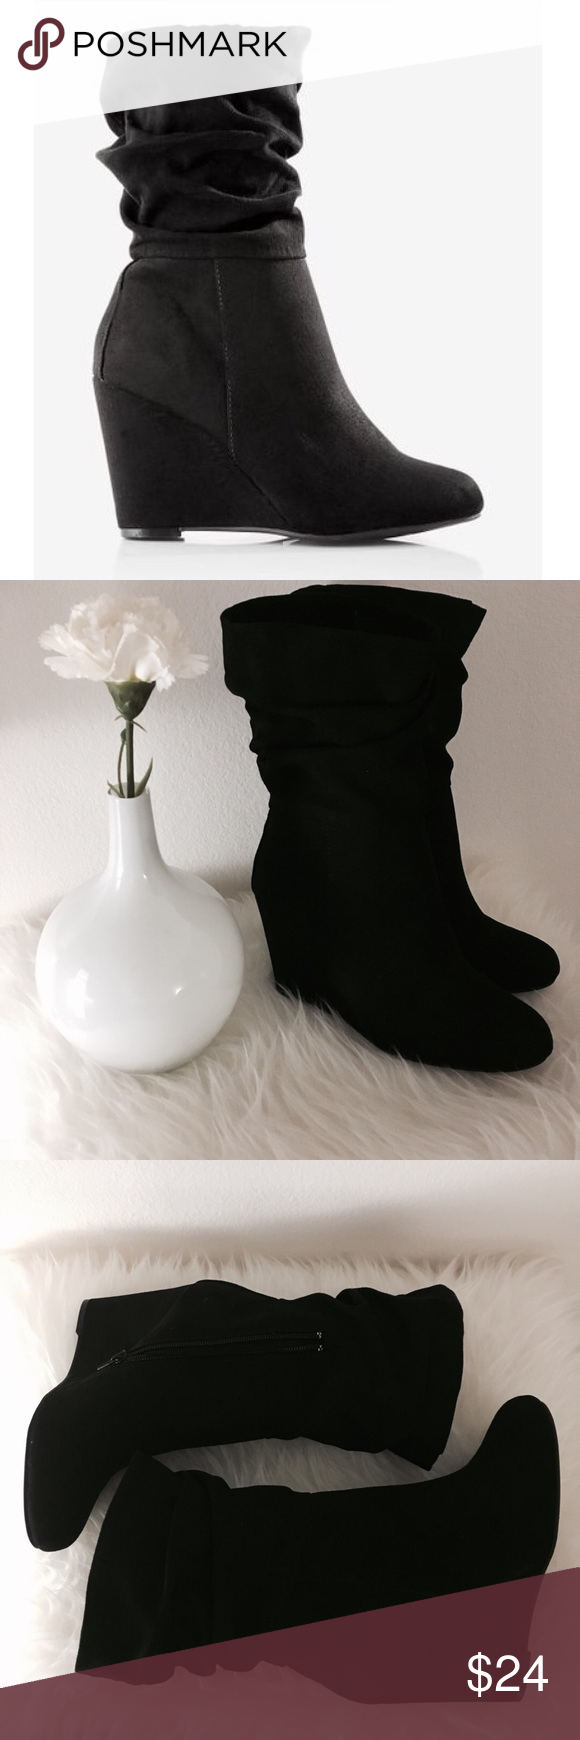 Express Slouch Wedge Boot - Black Express Slouch Wedge Boot - Black. Brand new, never used  •Content + Details• *Suede *Wedge heel *Side zipper  •Fitting Measurements• Size: 6, fits 6 to 6 1/2  ▪️Shipping 📦: I typically ship 1-2 days (excluding Sunday) after a purchase has been made Express Shoes Ankle Boots & Booties